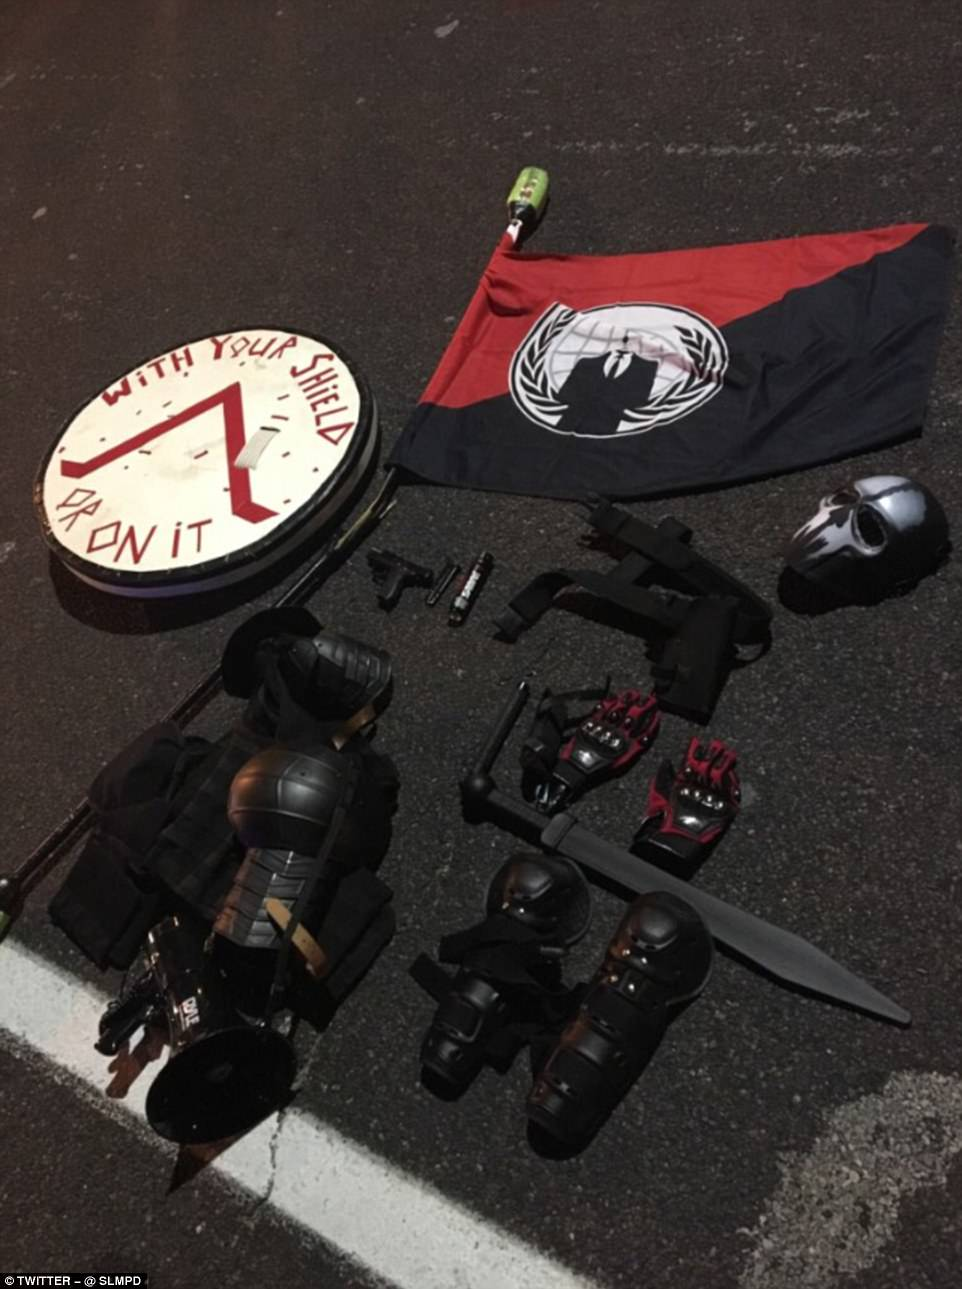 These are the items confiscated from the individual, who has not yet been named. Police said he was also taken into custody after the incident